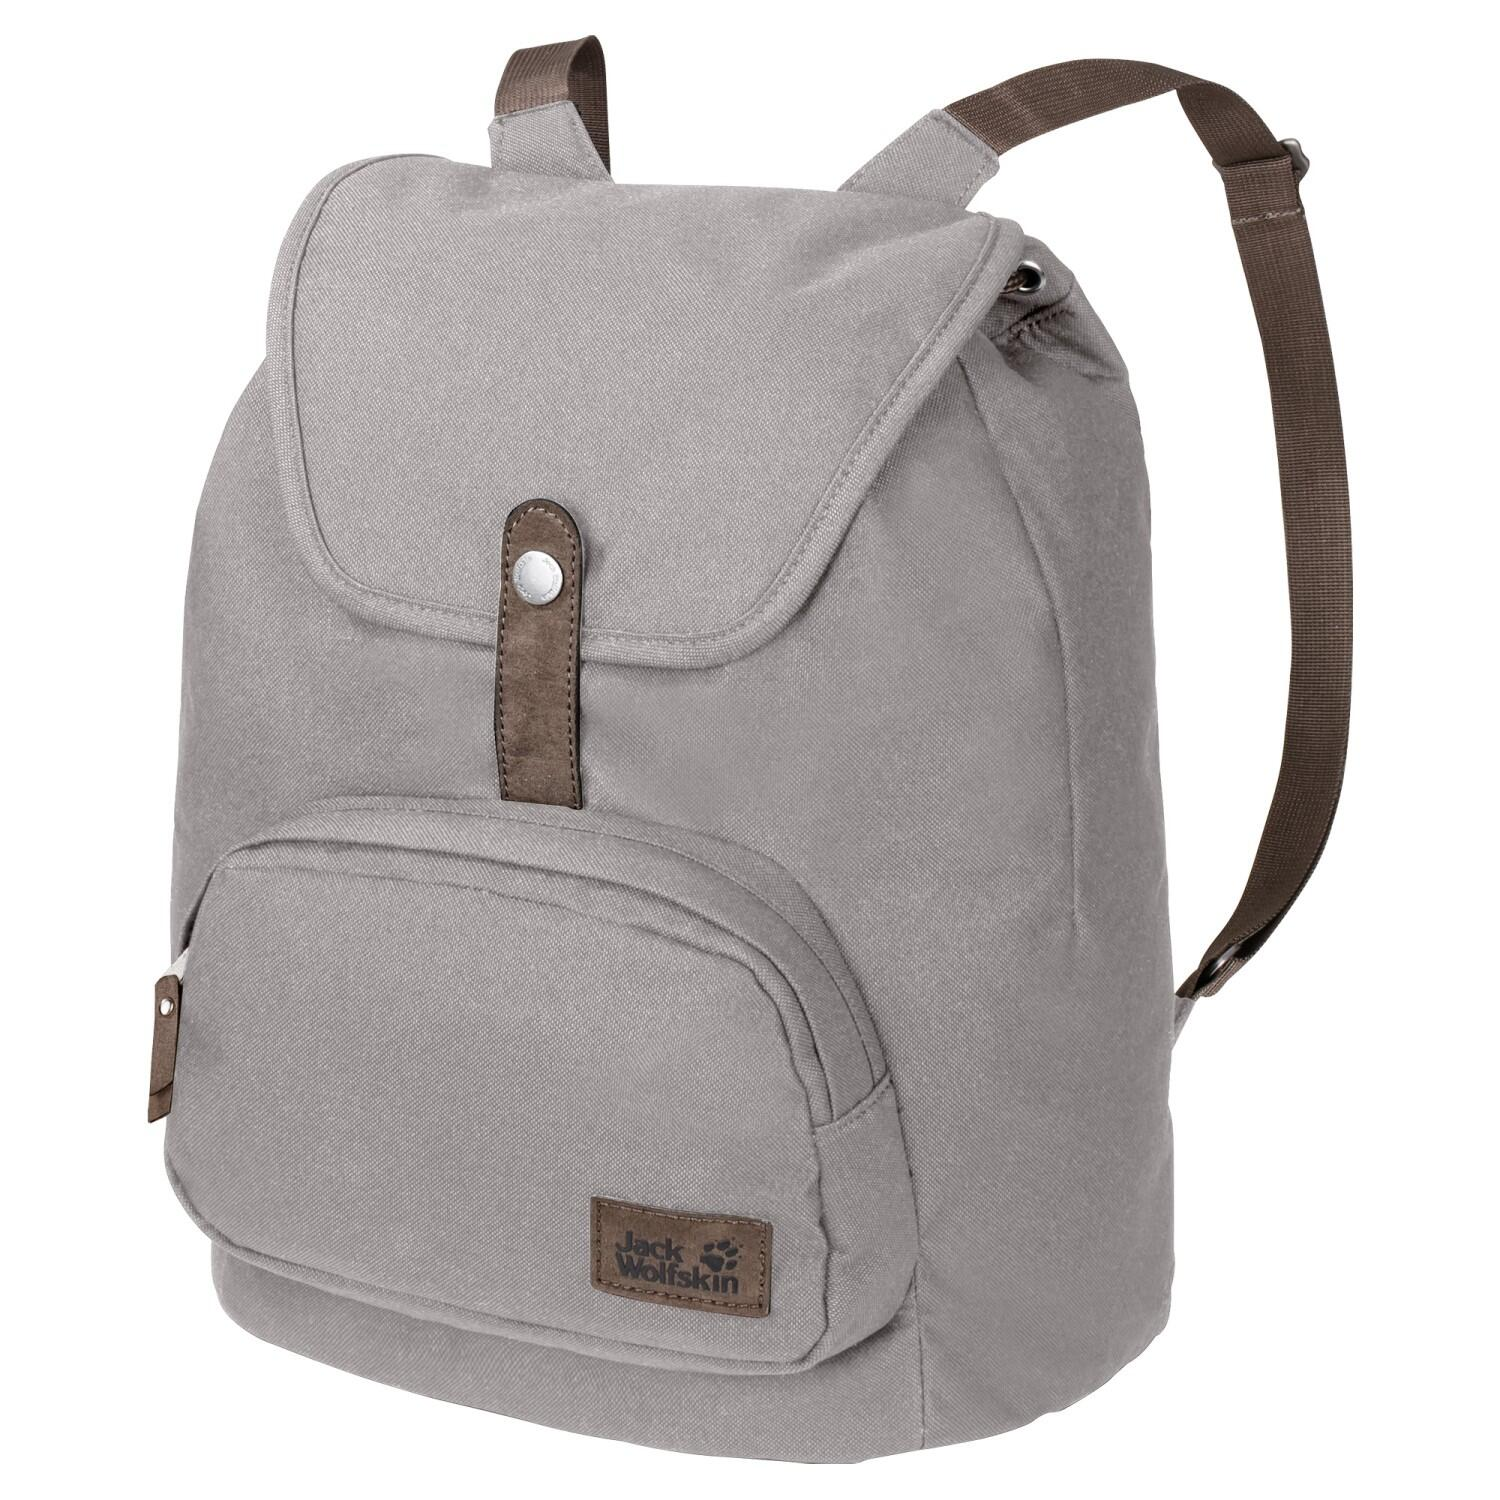 jack-wolfskin-long-acre-rucksack-farbe-6020-clay-grey-